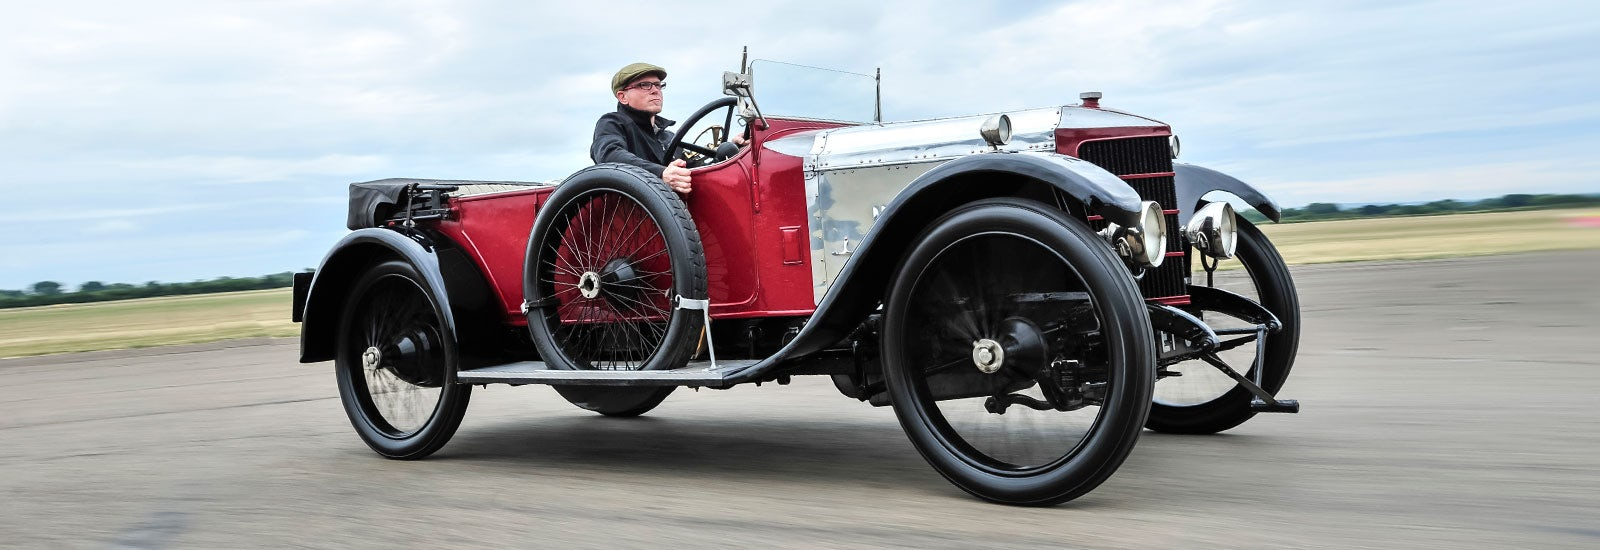 The four-litre engine in this 1910 Prince Henry model produced a thrilling  86hp